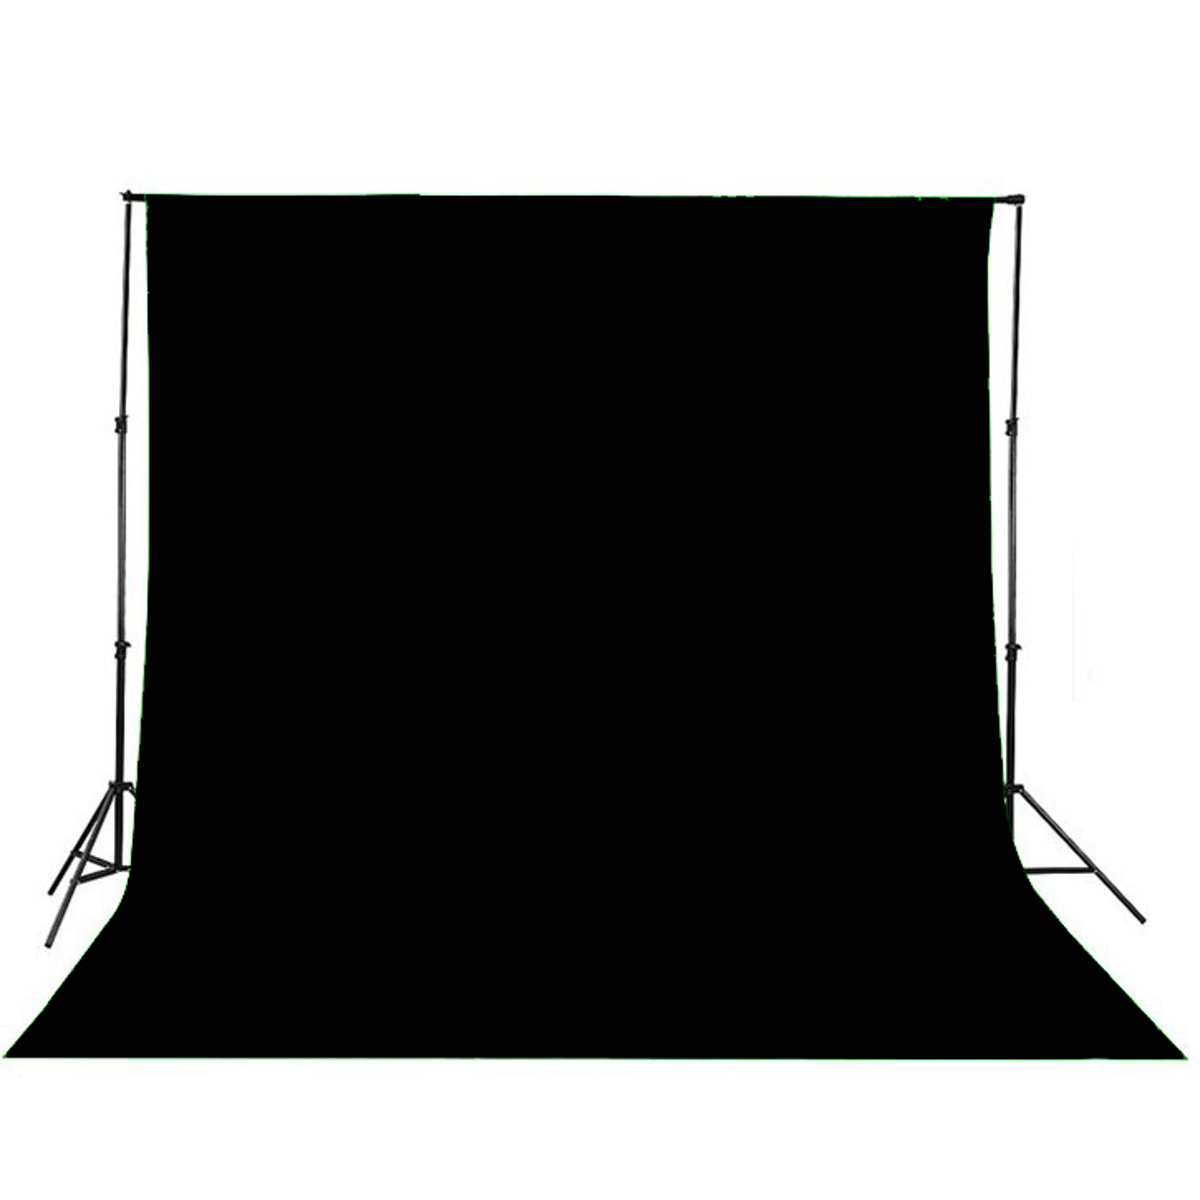 Black and white stage curtain - 2017 New Arrival Black Pleated Backdrop For Stage Curtain Drape 30cm X 26cm Durable Quality